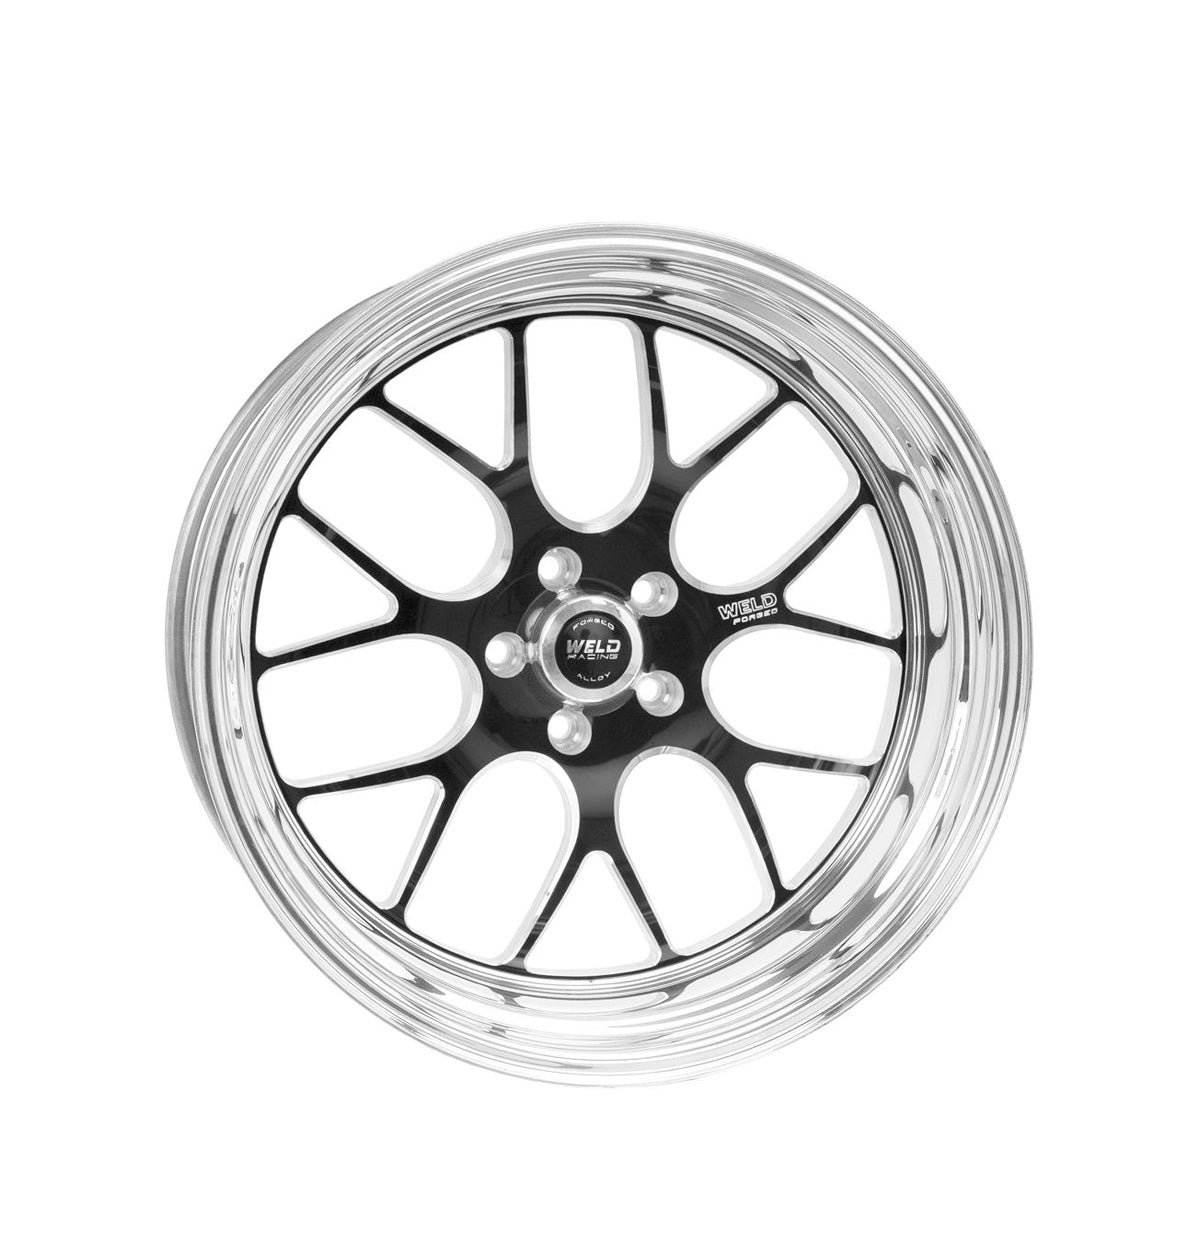 "Weld Wheels RT-S S77 -- 15x10.33 5x4.5 Low Pad 7.5"" BS +47mm -- Black REAR for Toyota Supra"